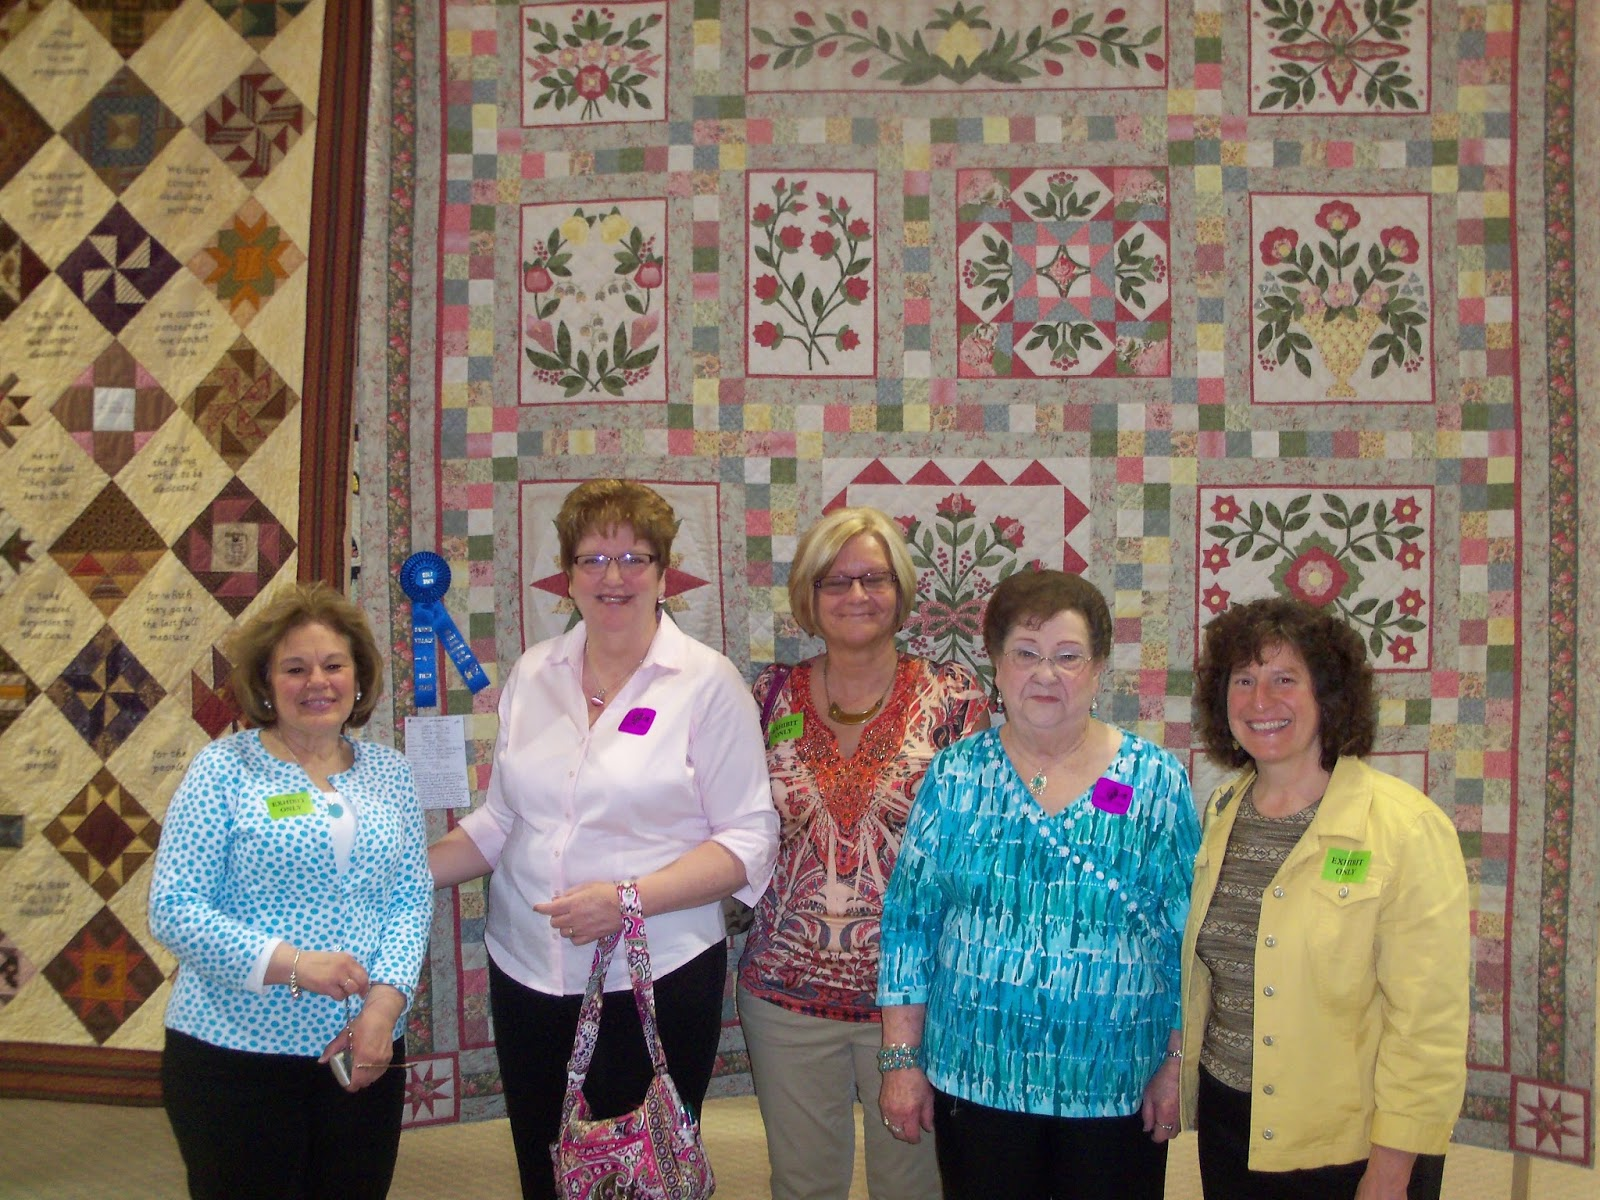 Quilts and Needlework with Debbie: Sauder Village Quilt Show in ... : sauder village quilt show - Adamdwight.com